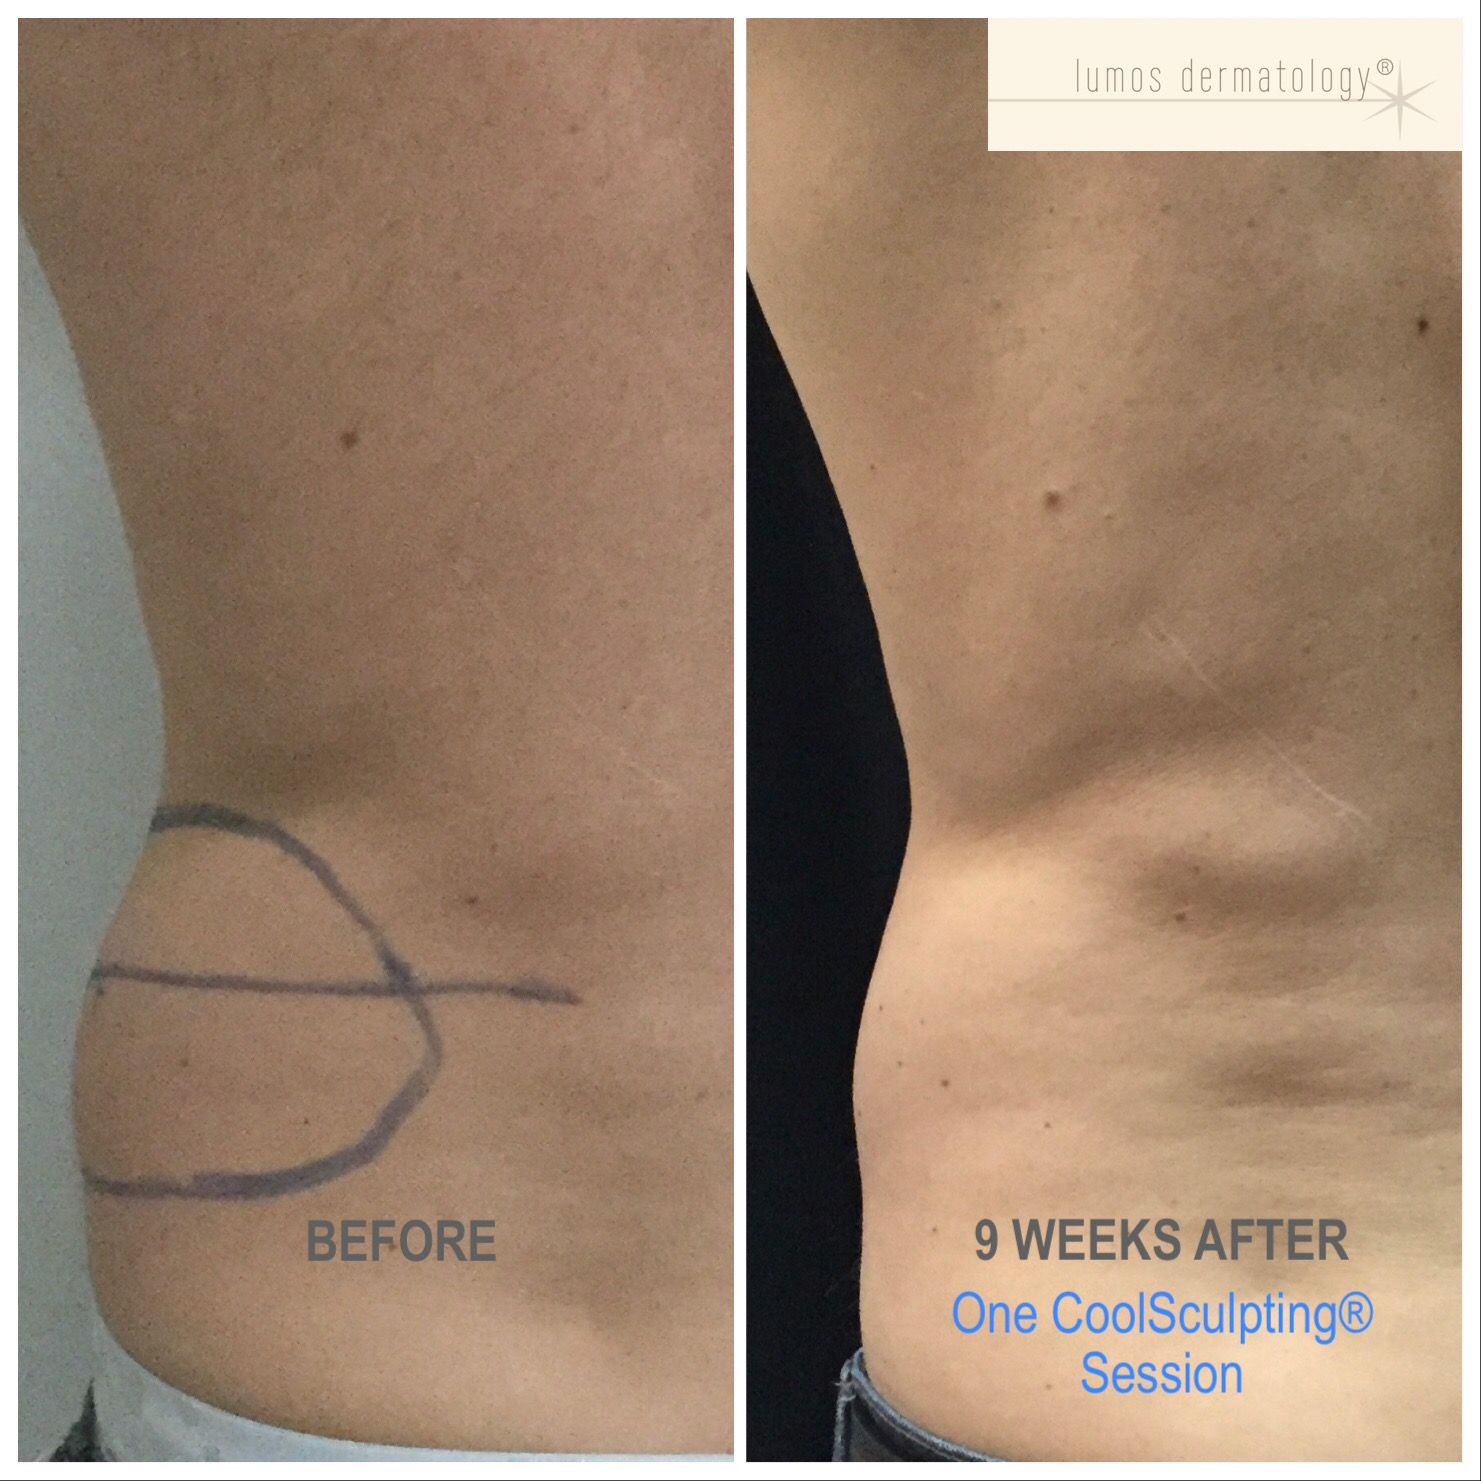 CoolSculpting left posterior flank before and after 1 treatment.JPEG